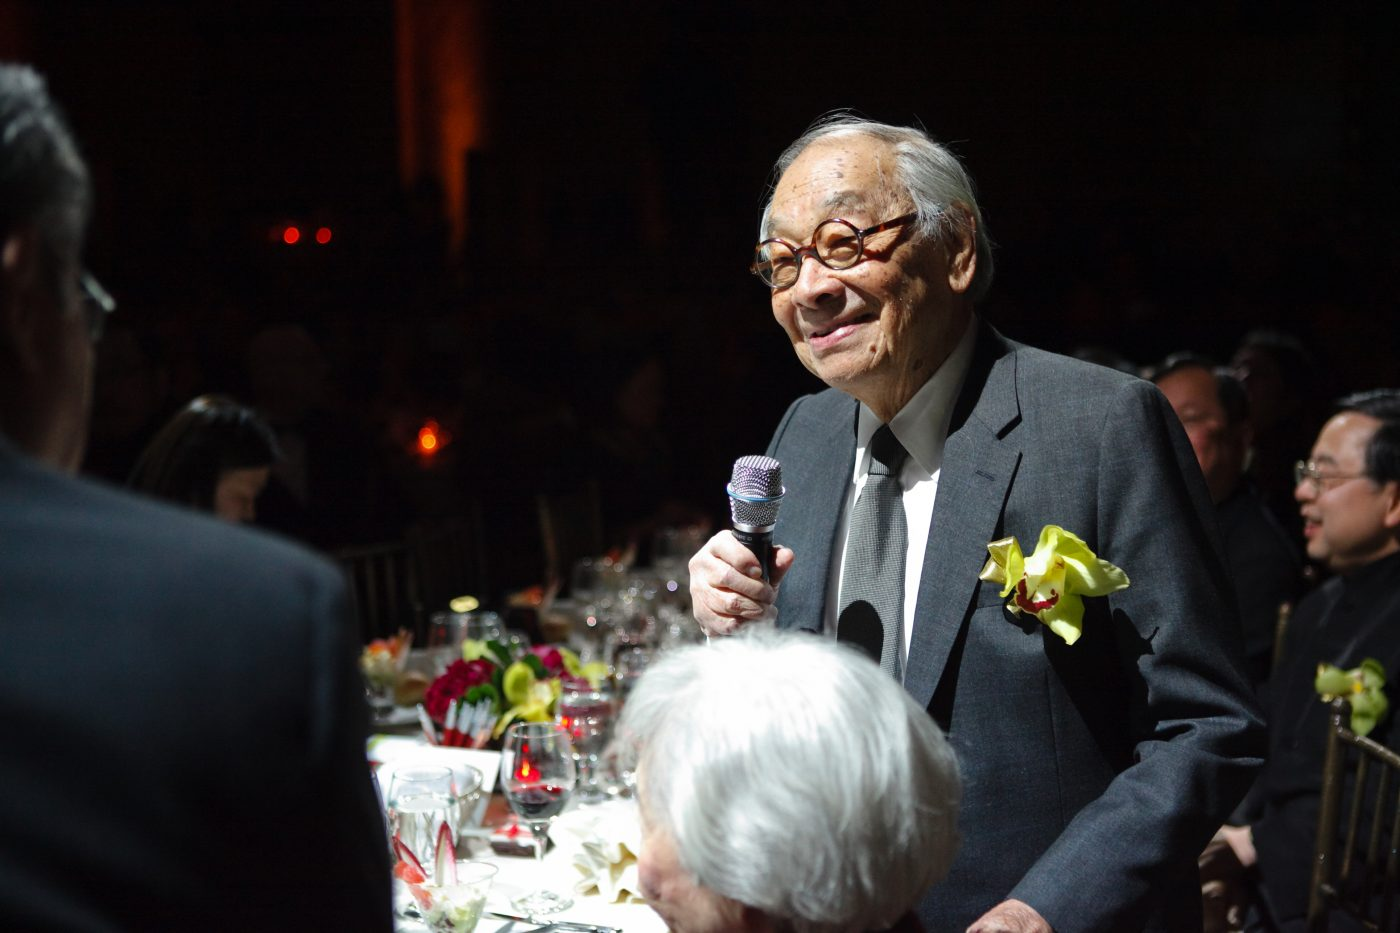 29 July 2019 Posted. I.M. Pei at the 2009 MOCA Gala, Museum of Chinese in America (MOCA) Institutional Archives. 贝聿铭在MOCA 2009年的历史传承慈善募款晚宴上,美国华人博物馆(MOCA)机构档案